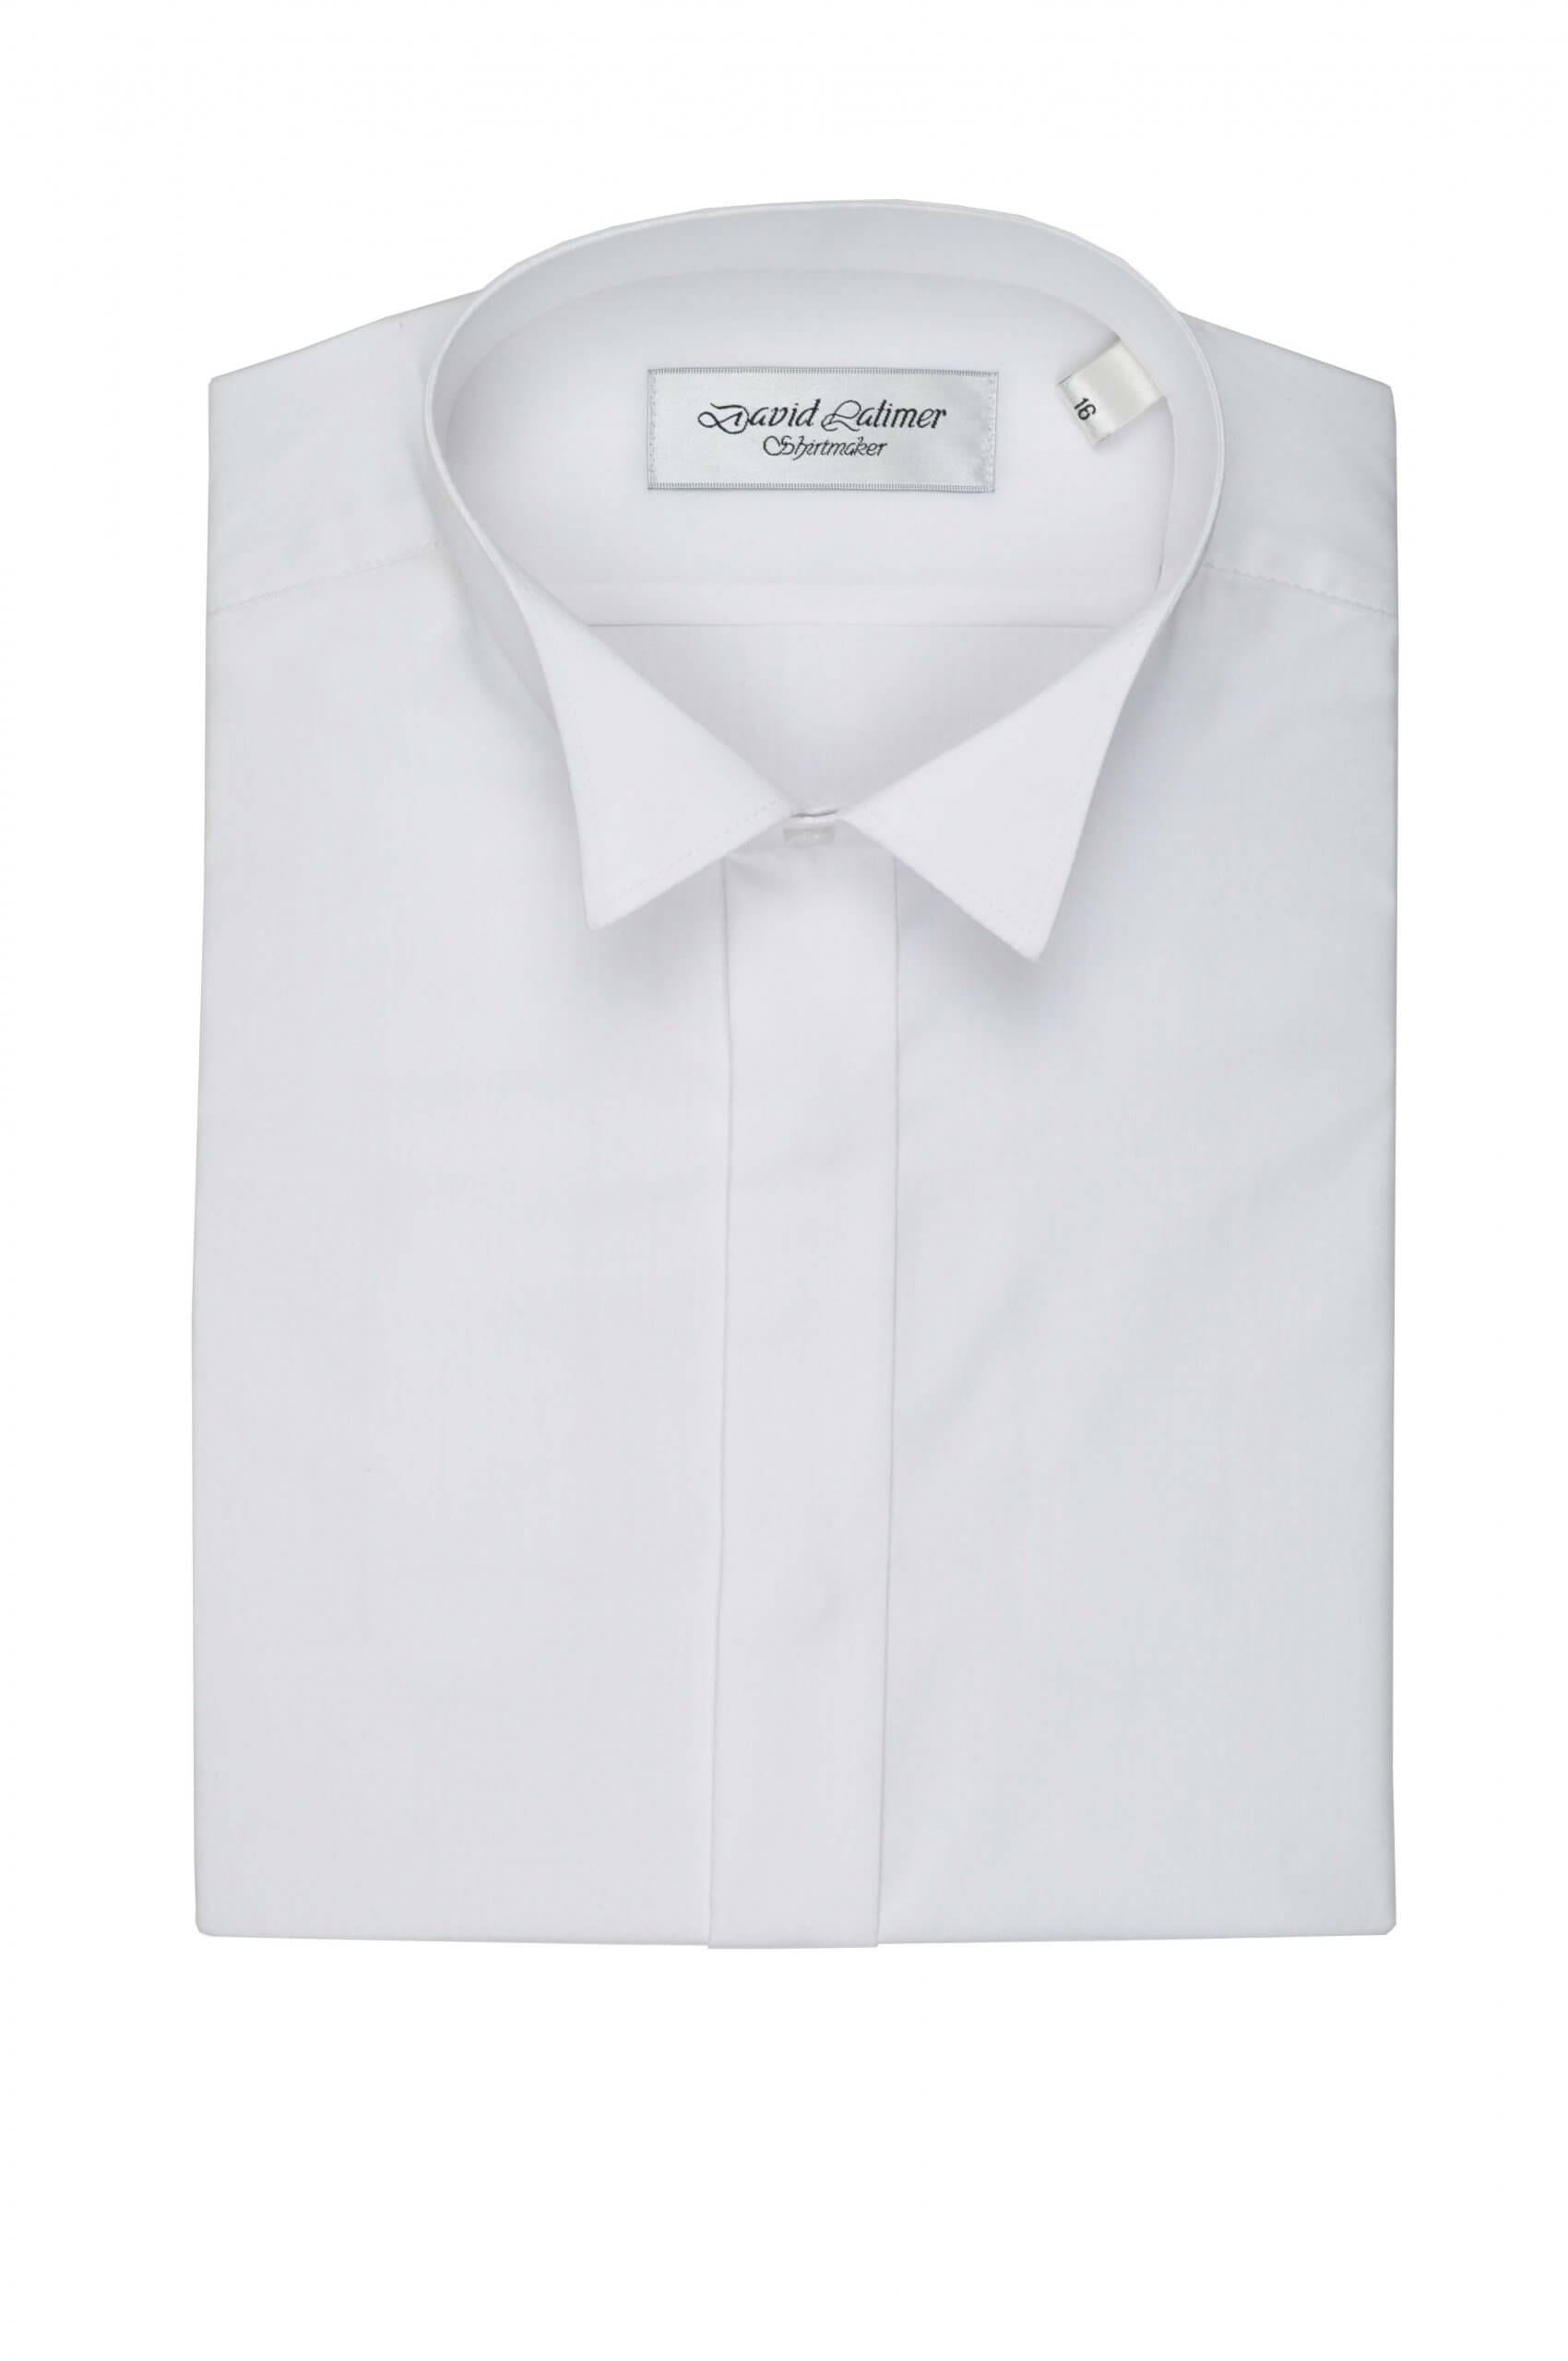 Plain Front Dress Shirt, in Standard or Wing Collar